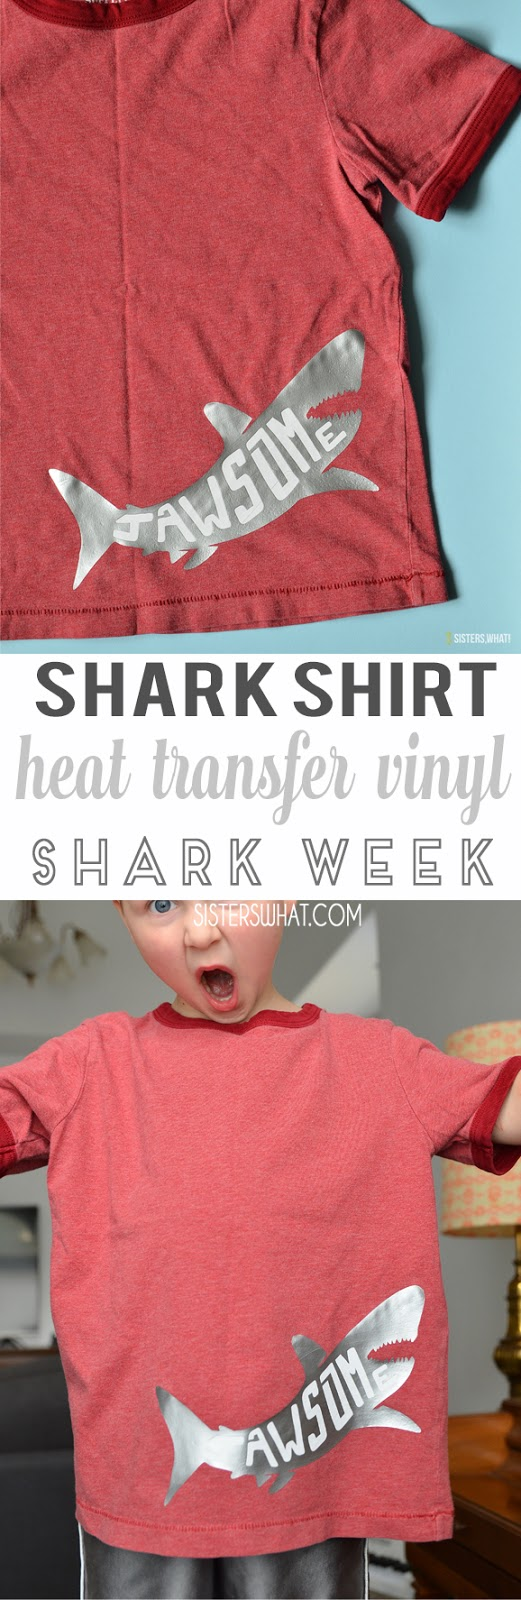 shark week shark shirt heat transfer vinyl